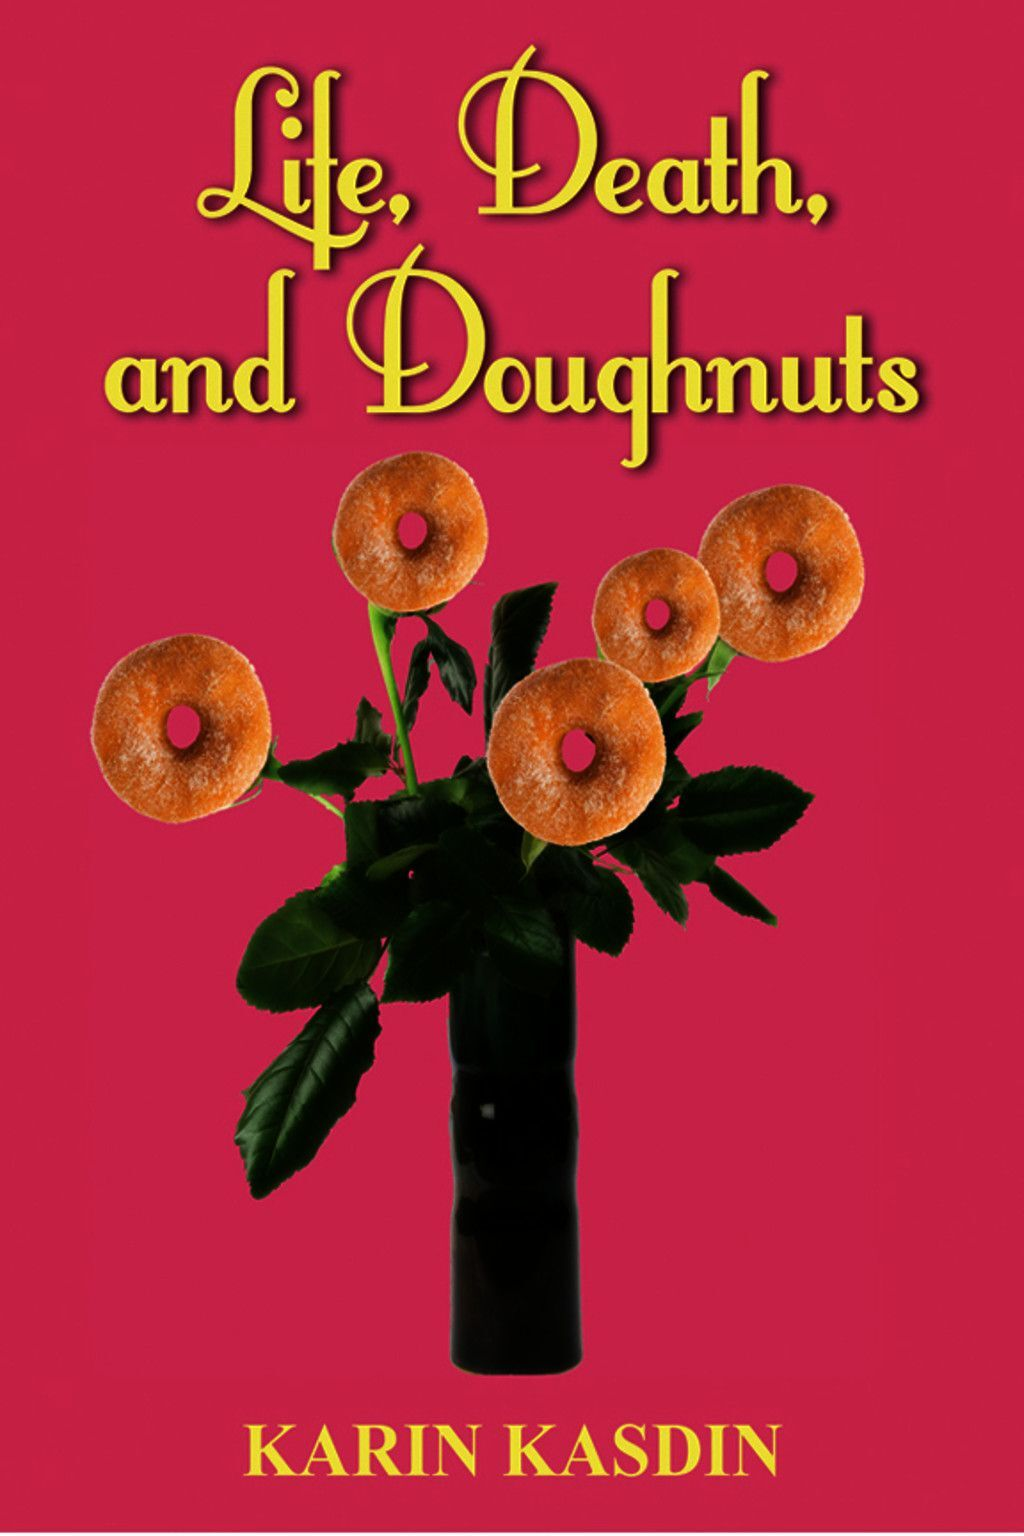 Life, Death And Doughnuts